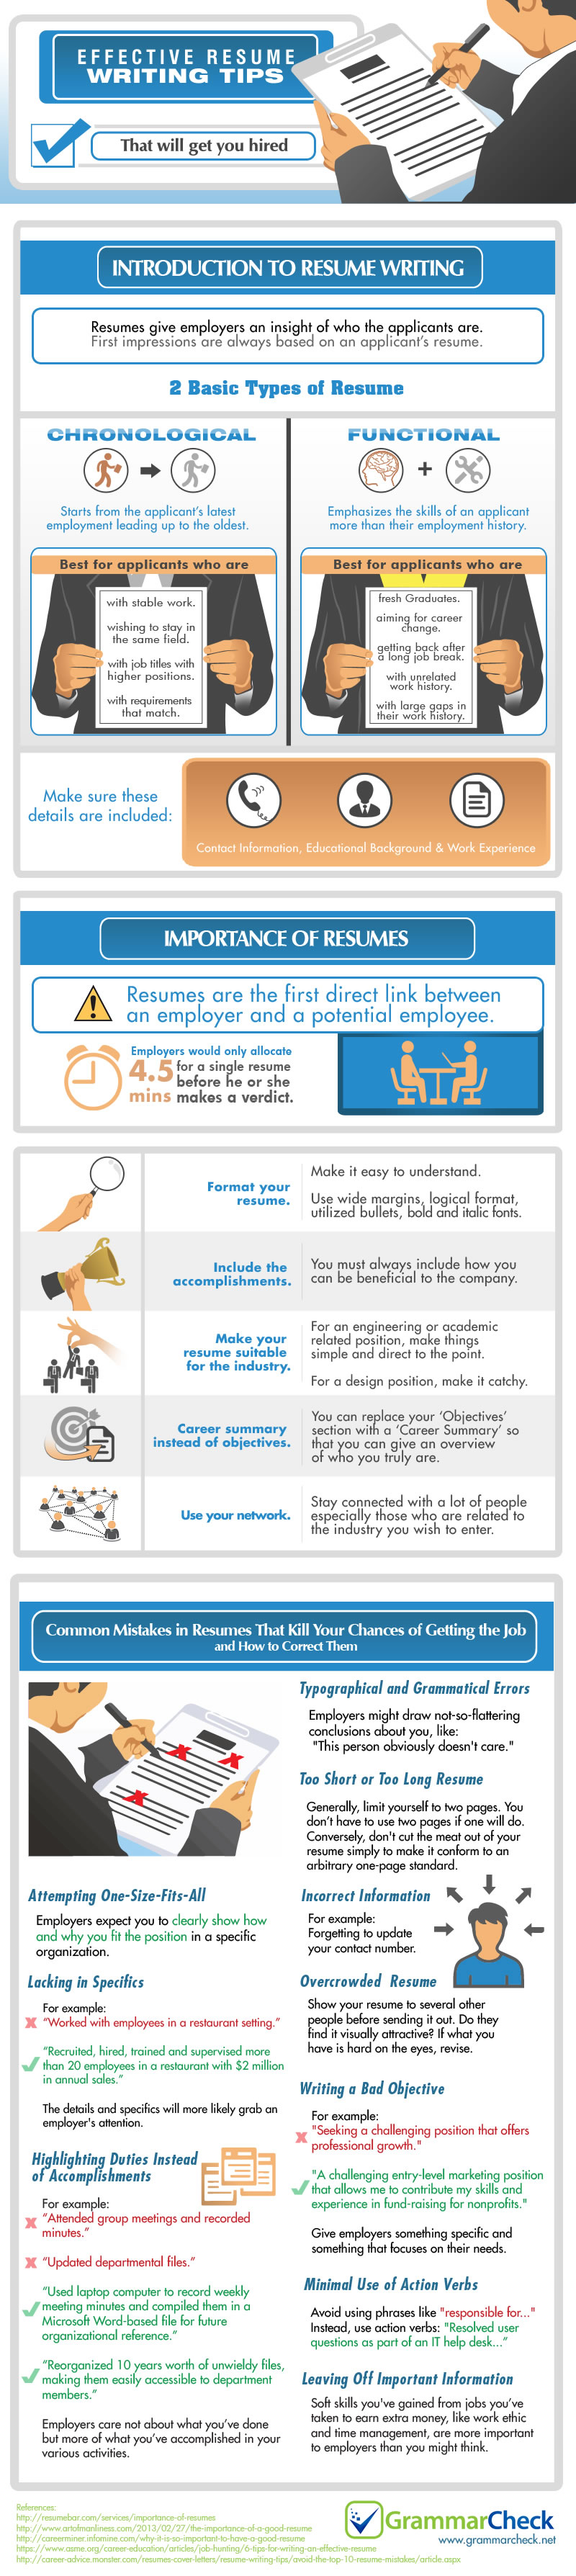 resume writing tips infographic effective resume writing tips infographic